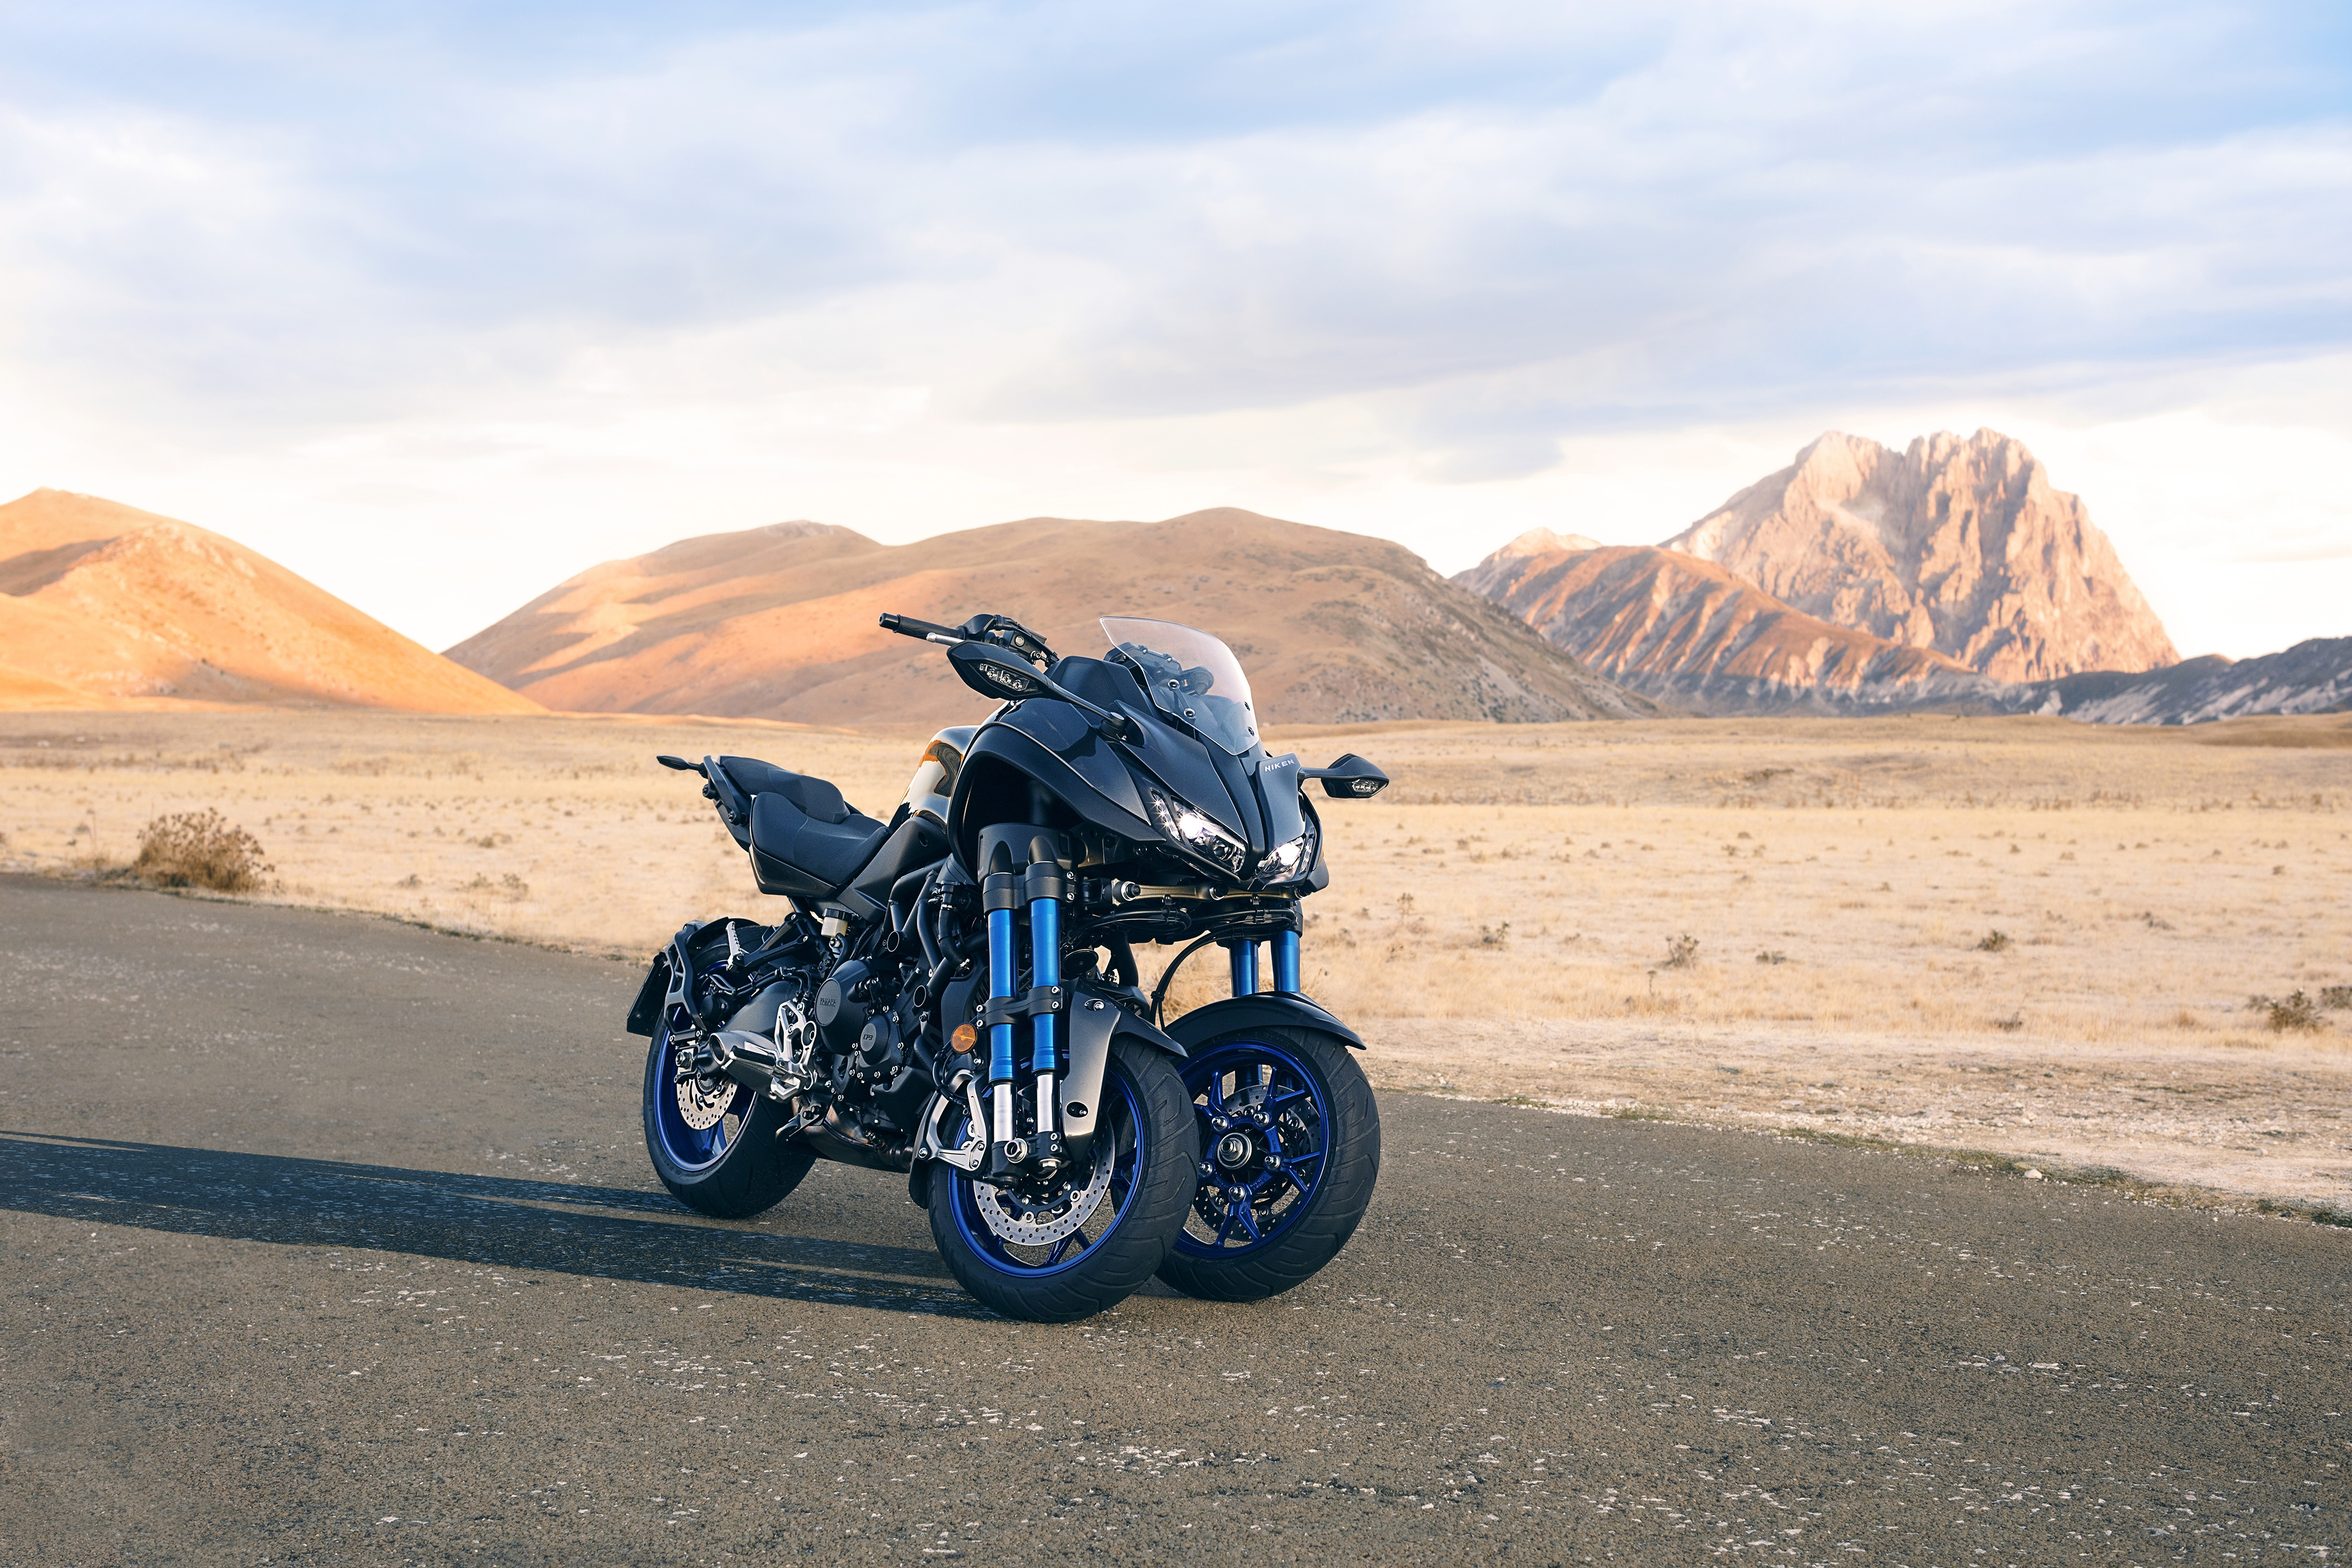 2018 Yamaha Niken, HD Bikes, 4k Wallpapers, Images